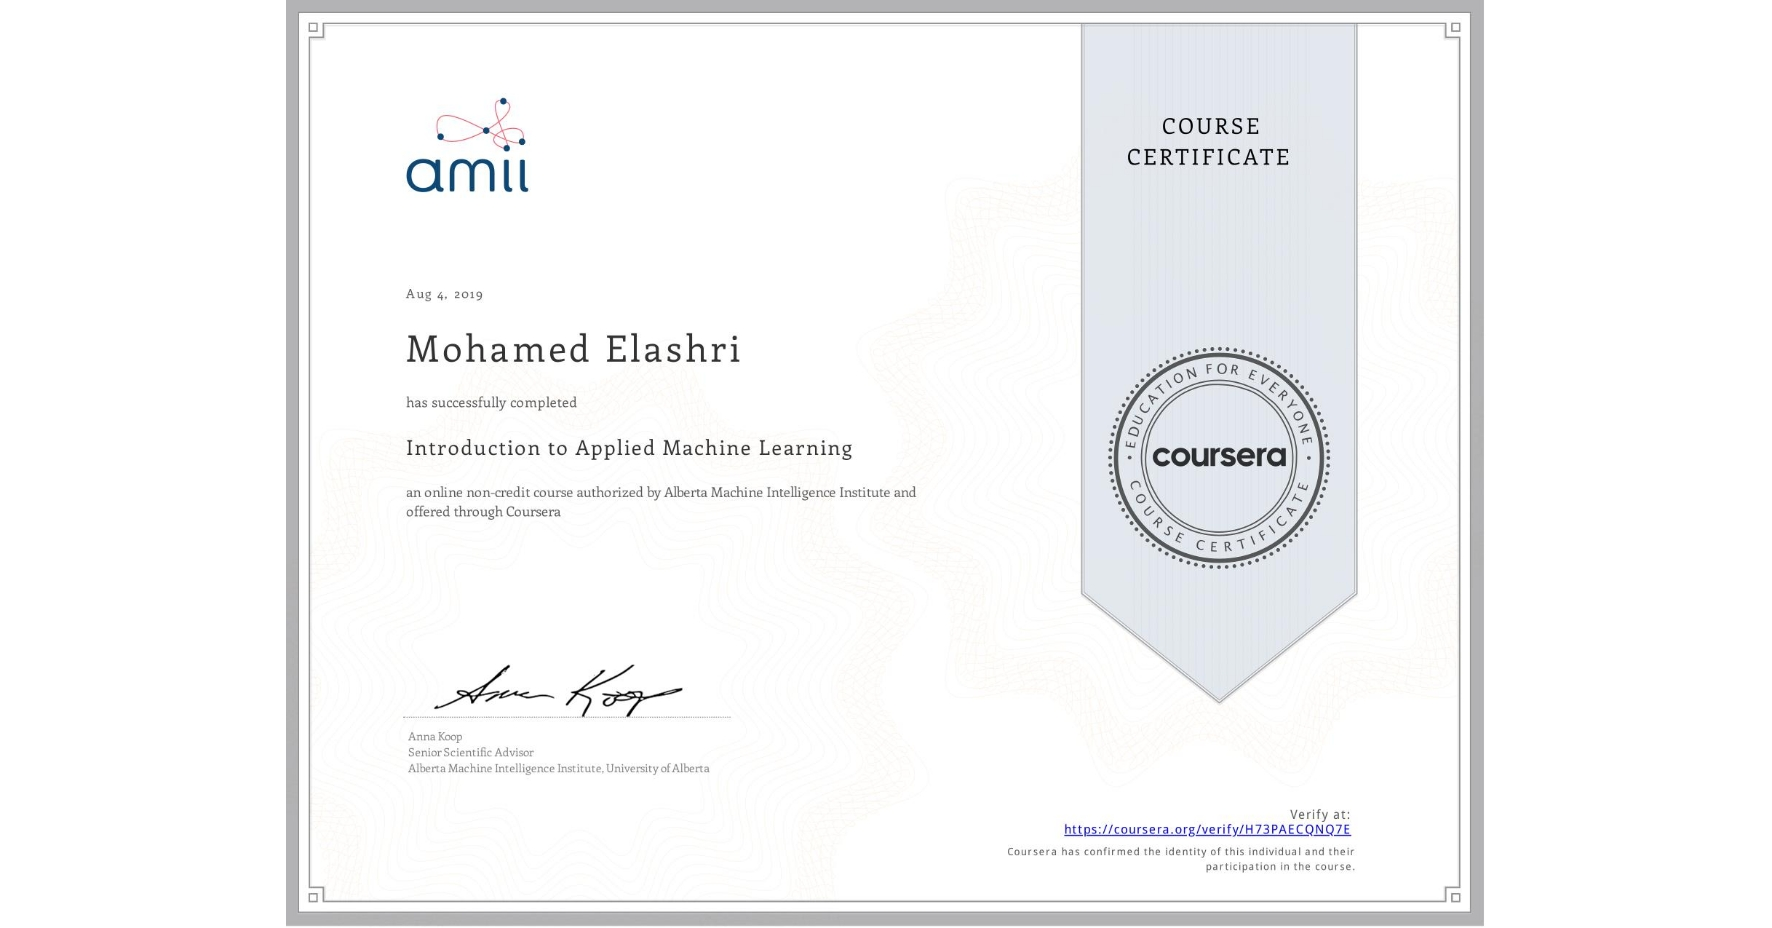 View certificate for Mohamed Elashri, Introduction to Applied Machine Learning, an online non-credit course authorized by Alberta Machine Intelligence Institute and offered through Coursera